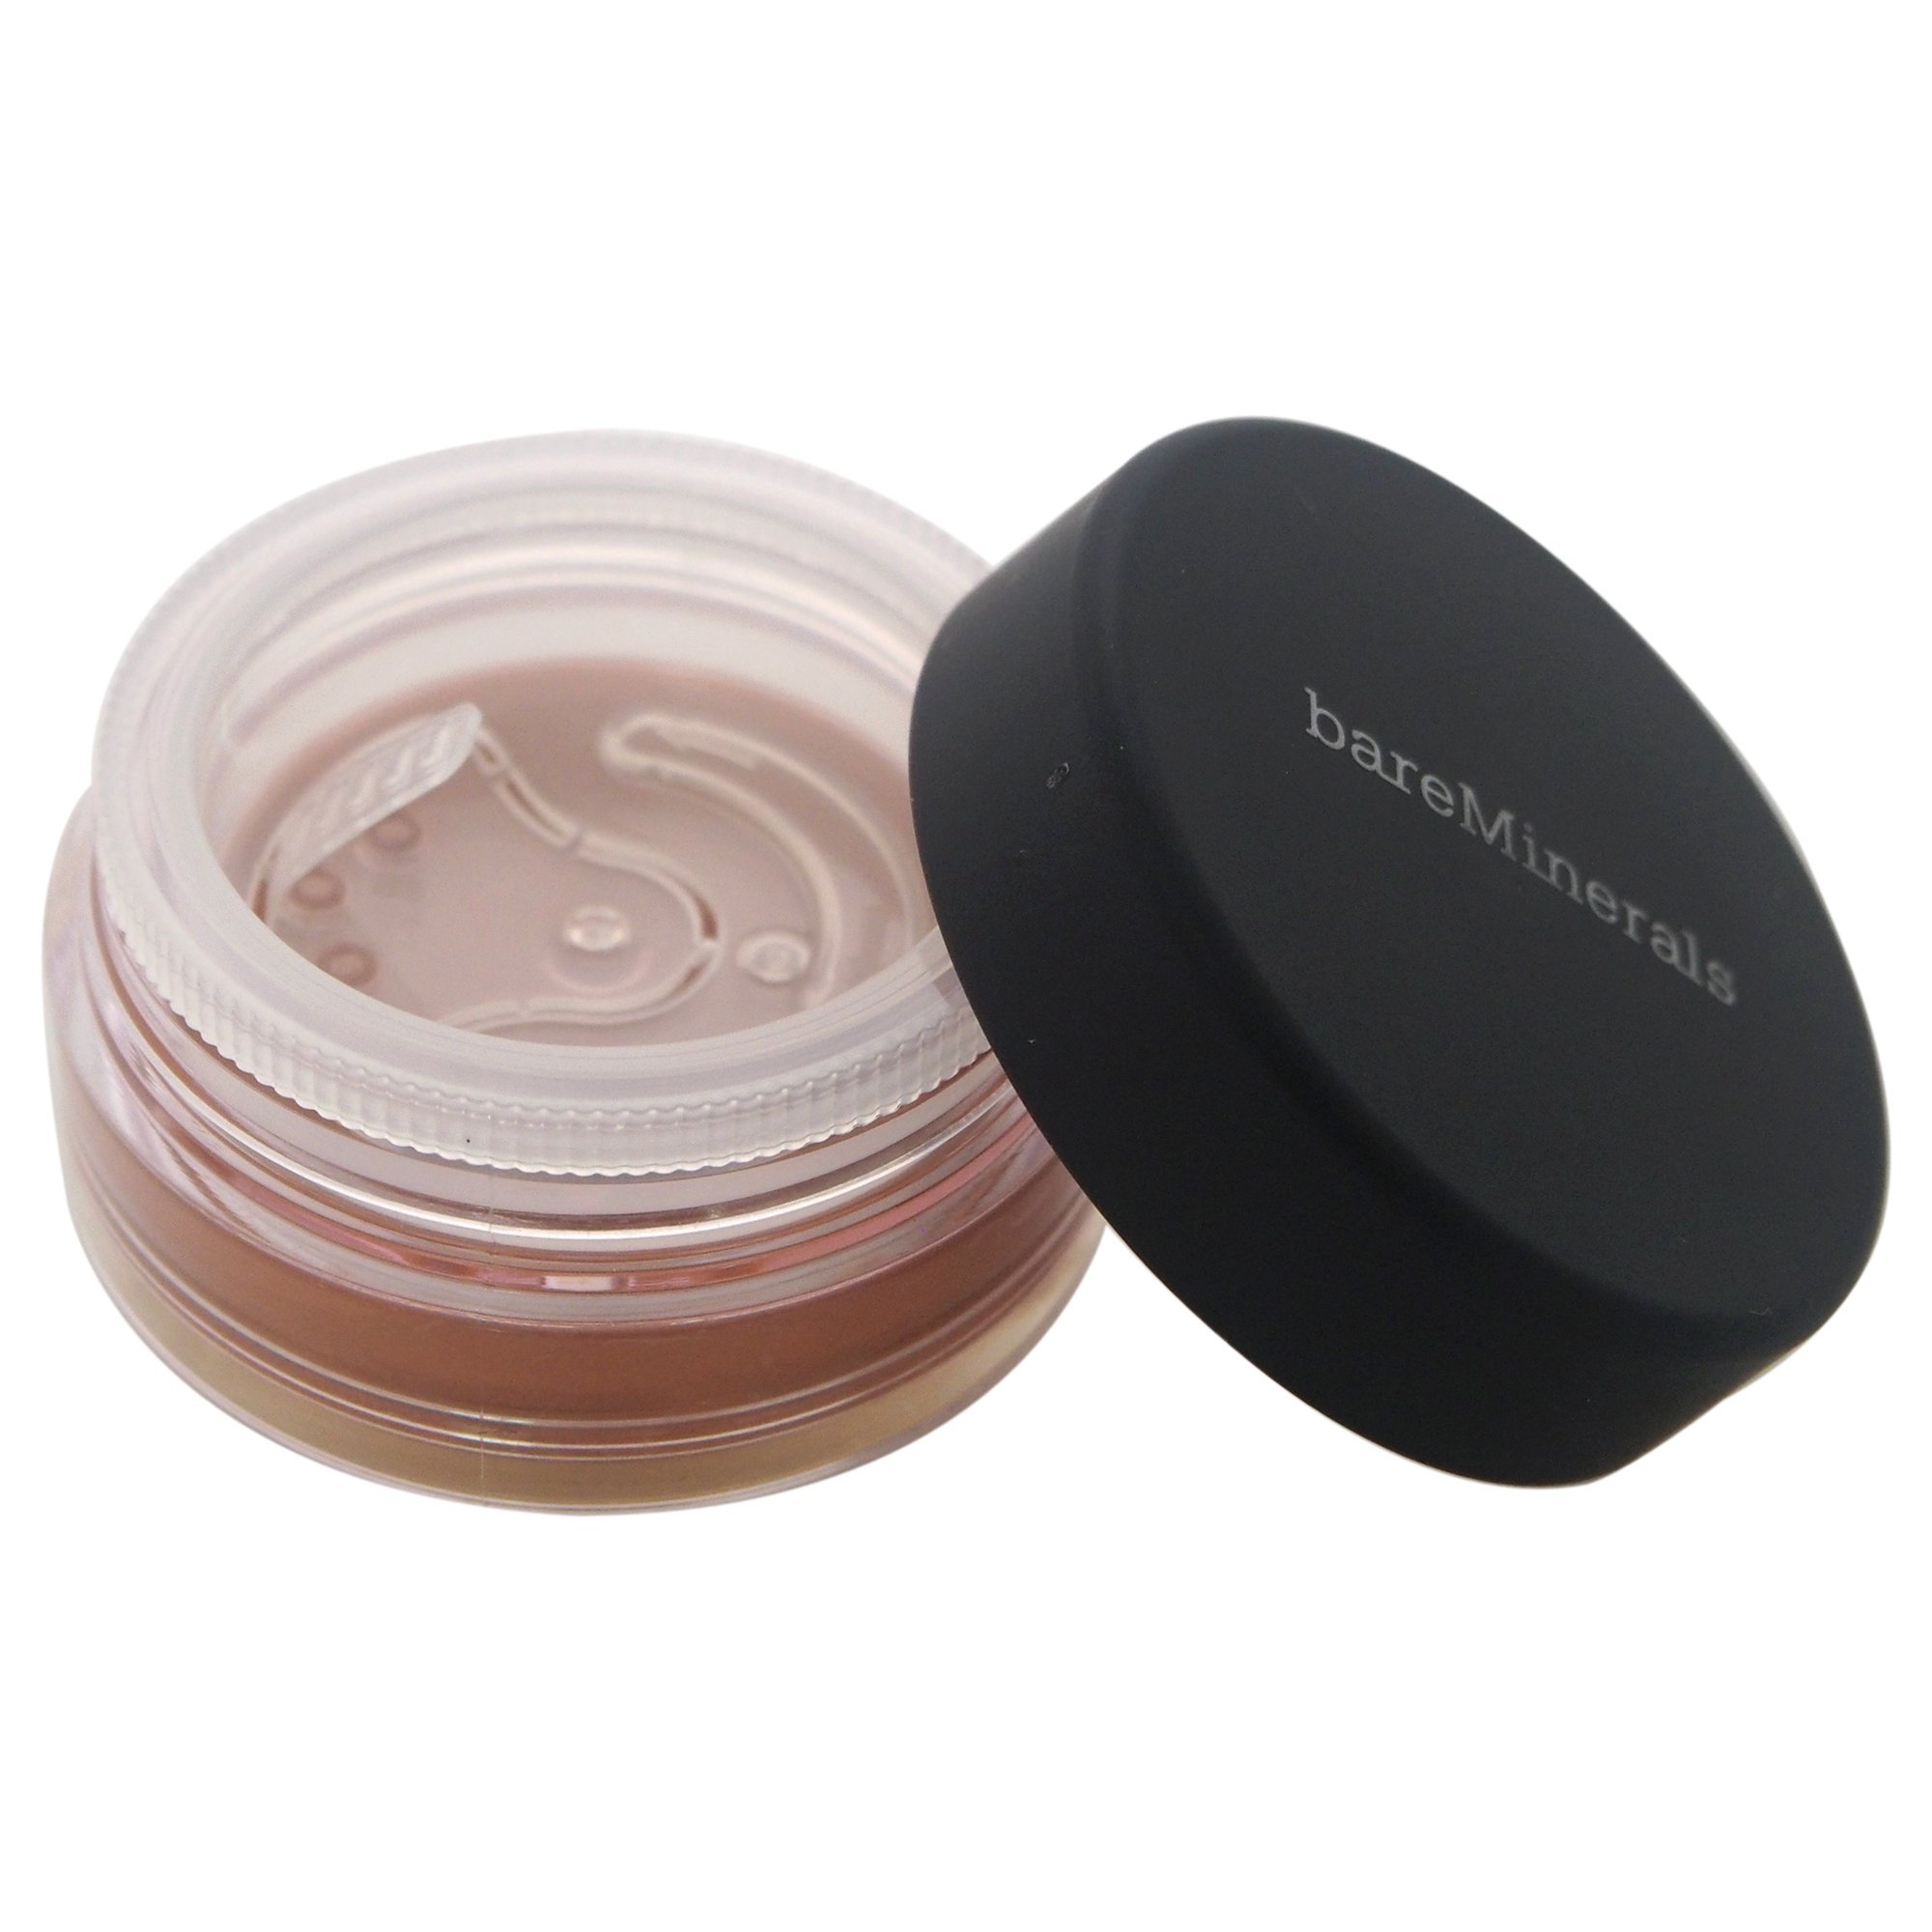 Bare Minerals All Over Face Powder, Color Warmth, 0.05 Ounce by bareMinerals